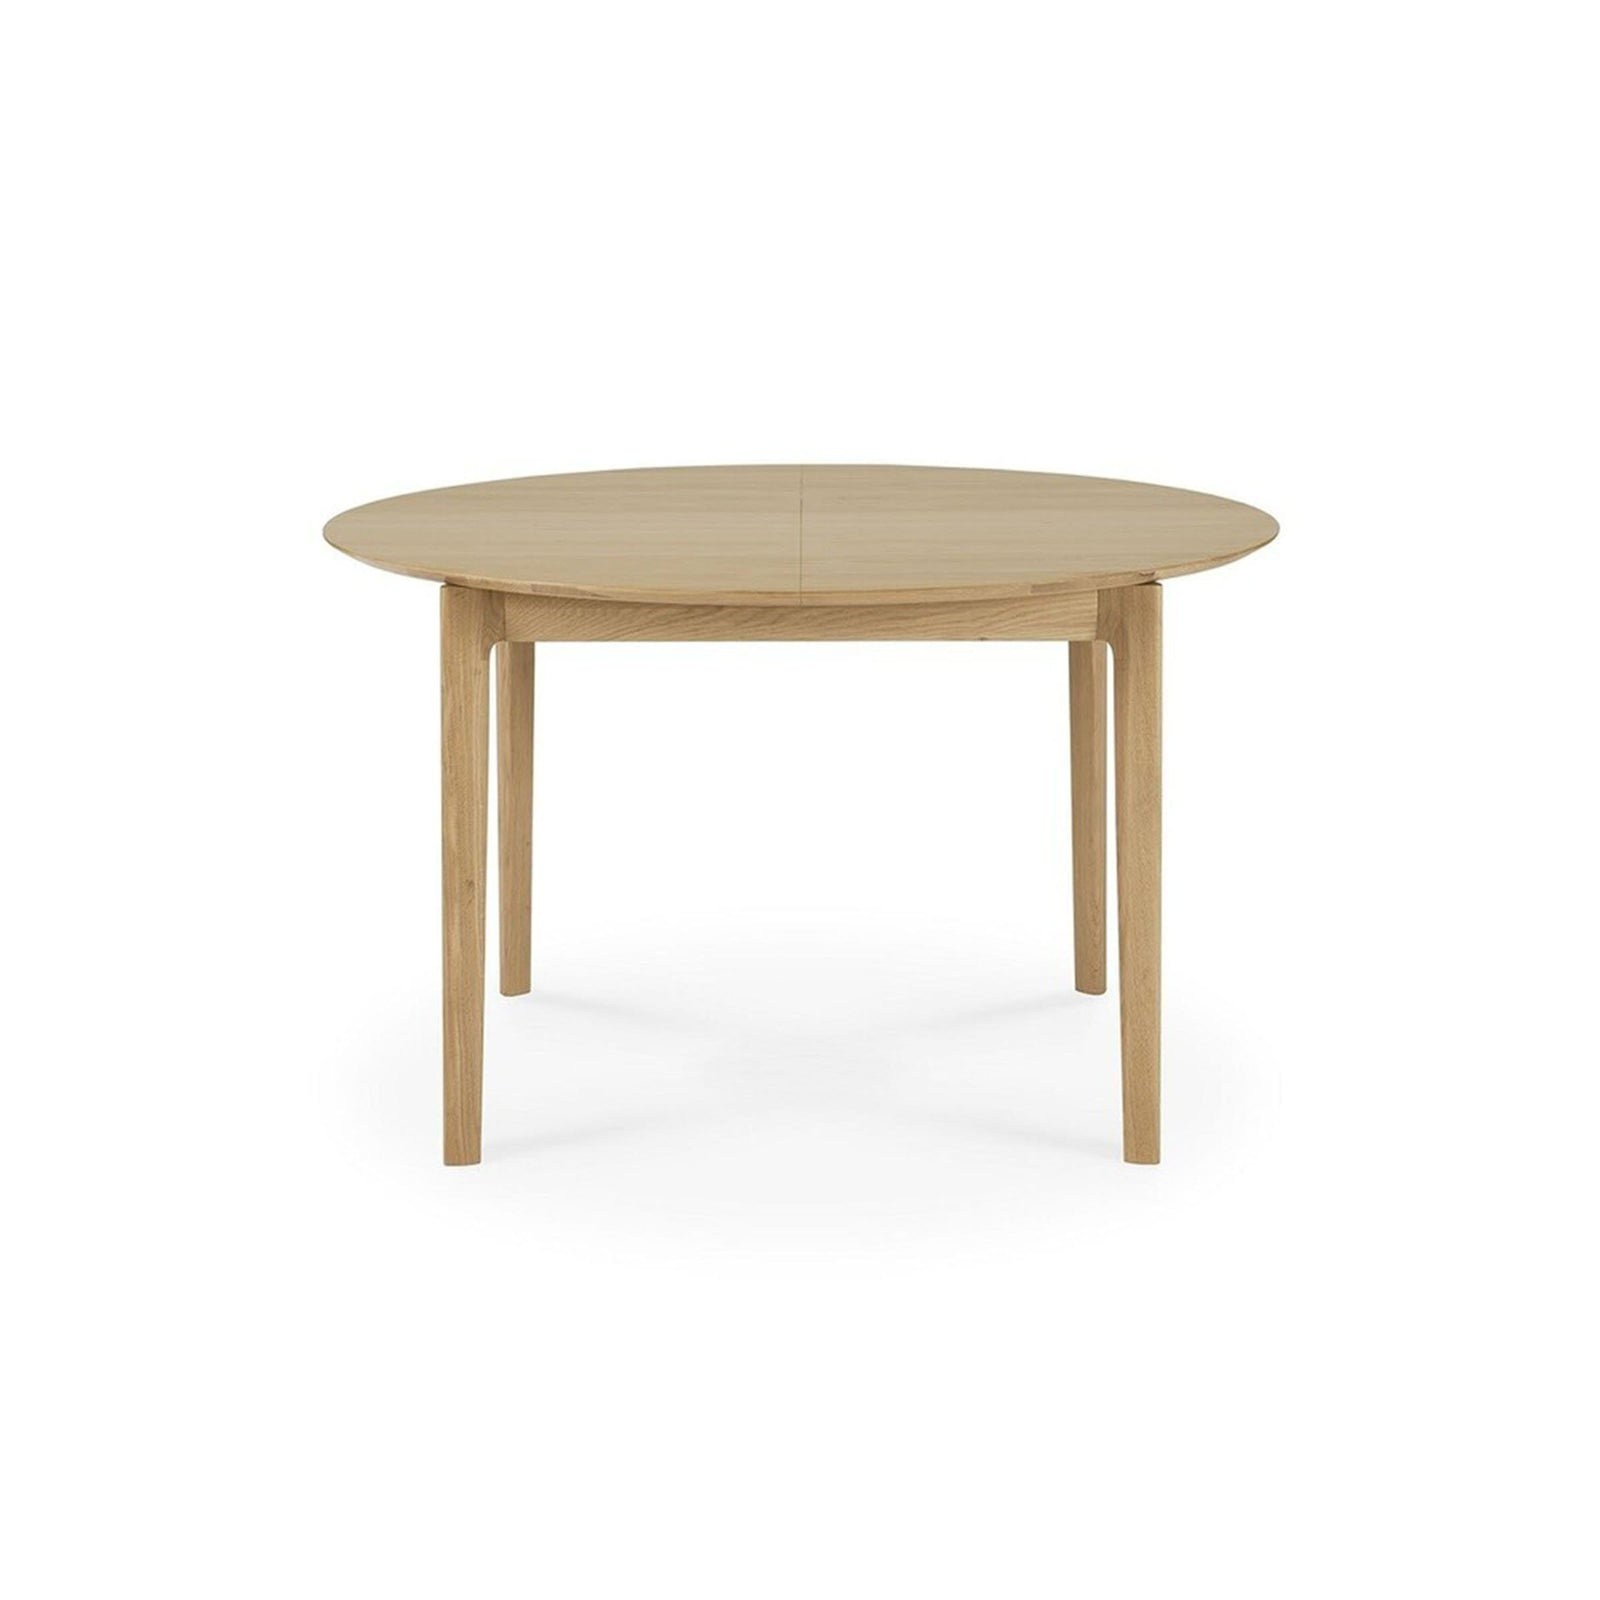 Ethnicraft Furniture Oak Bok Round Extendable Dining Table